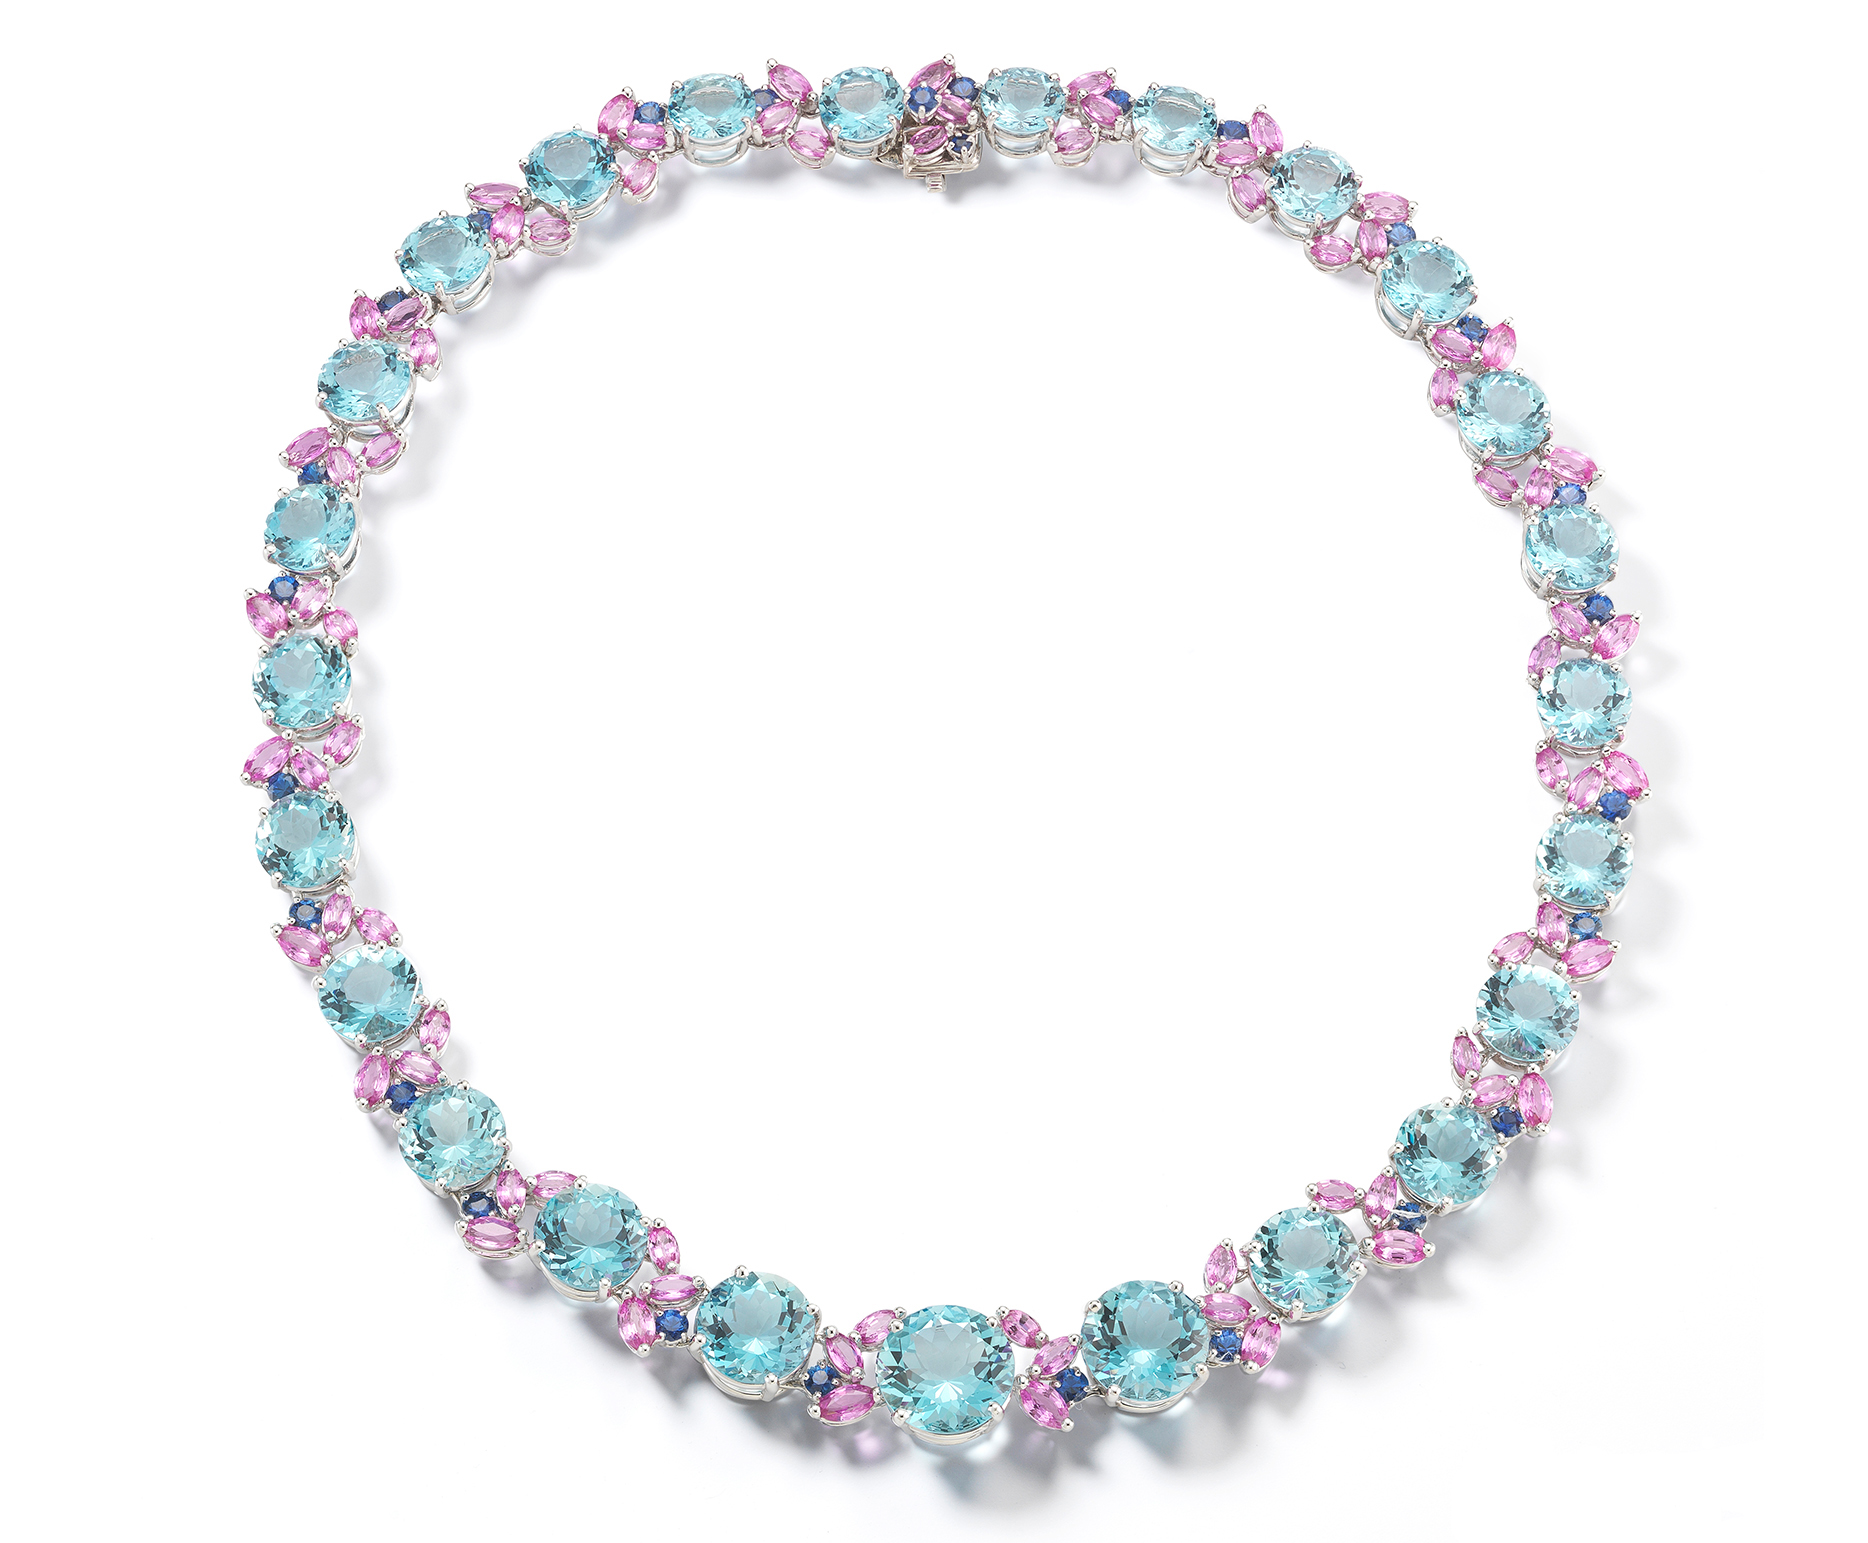 Oscar Heyman platinum aquamarine and sapphire necklace | JCK's On Your Market